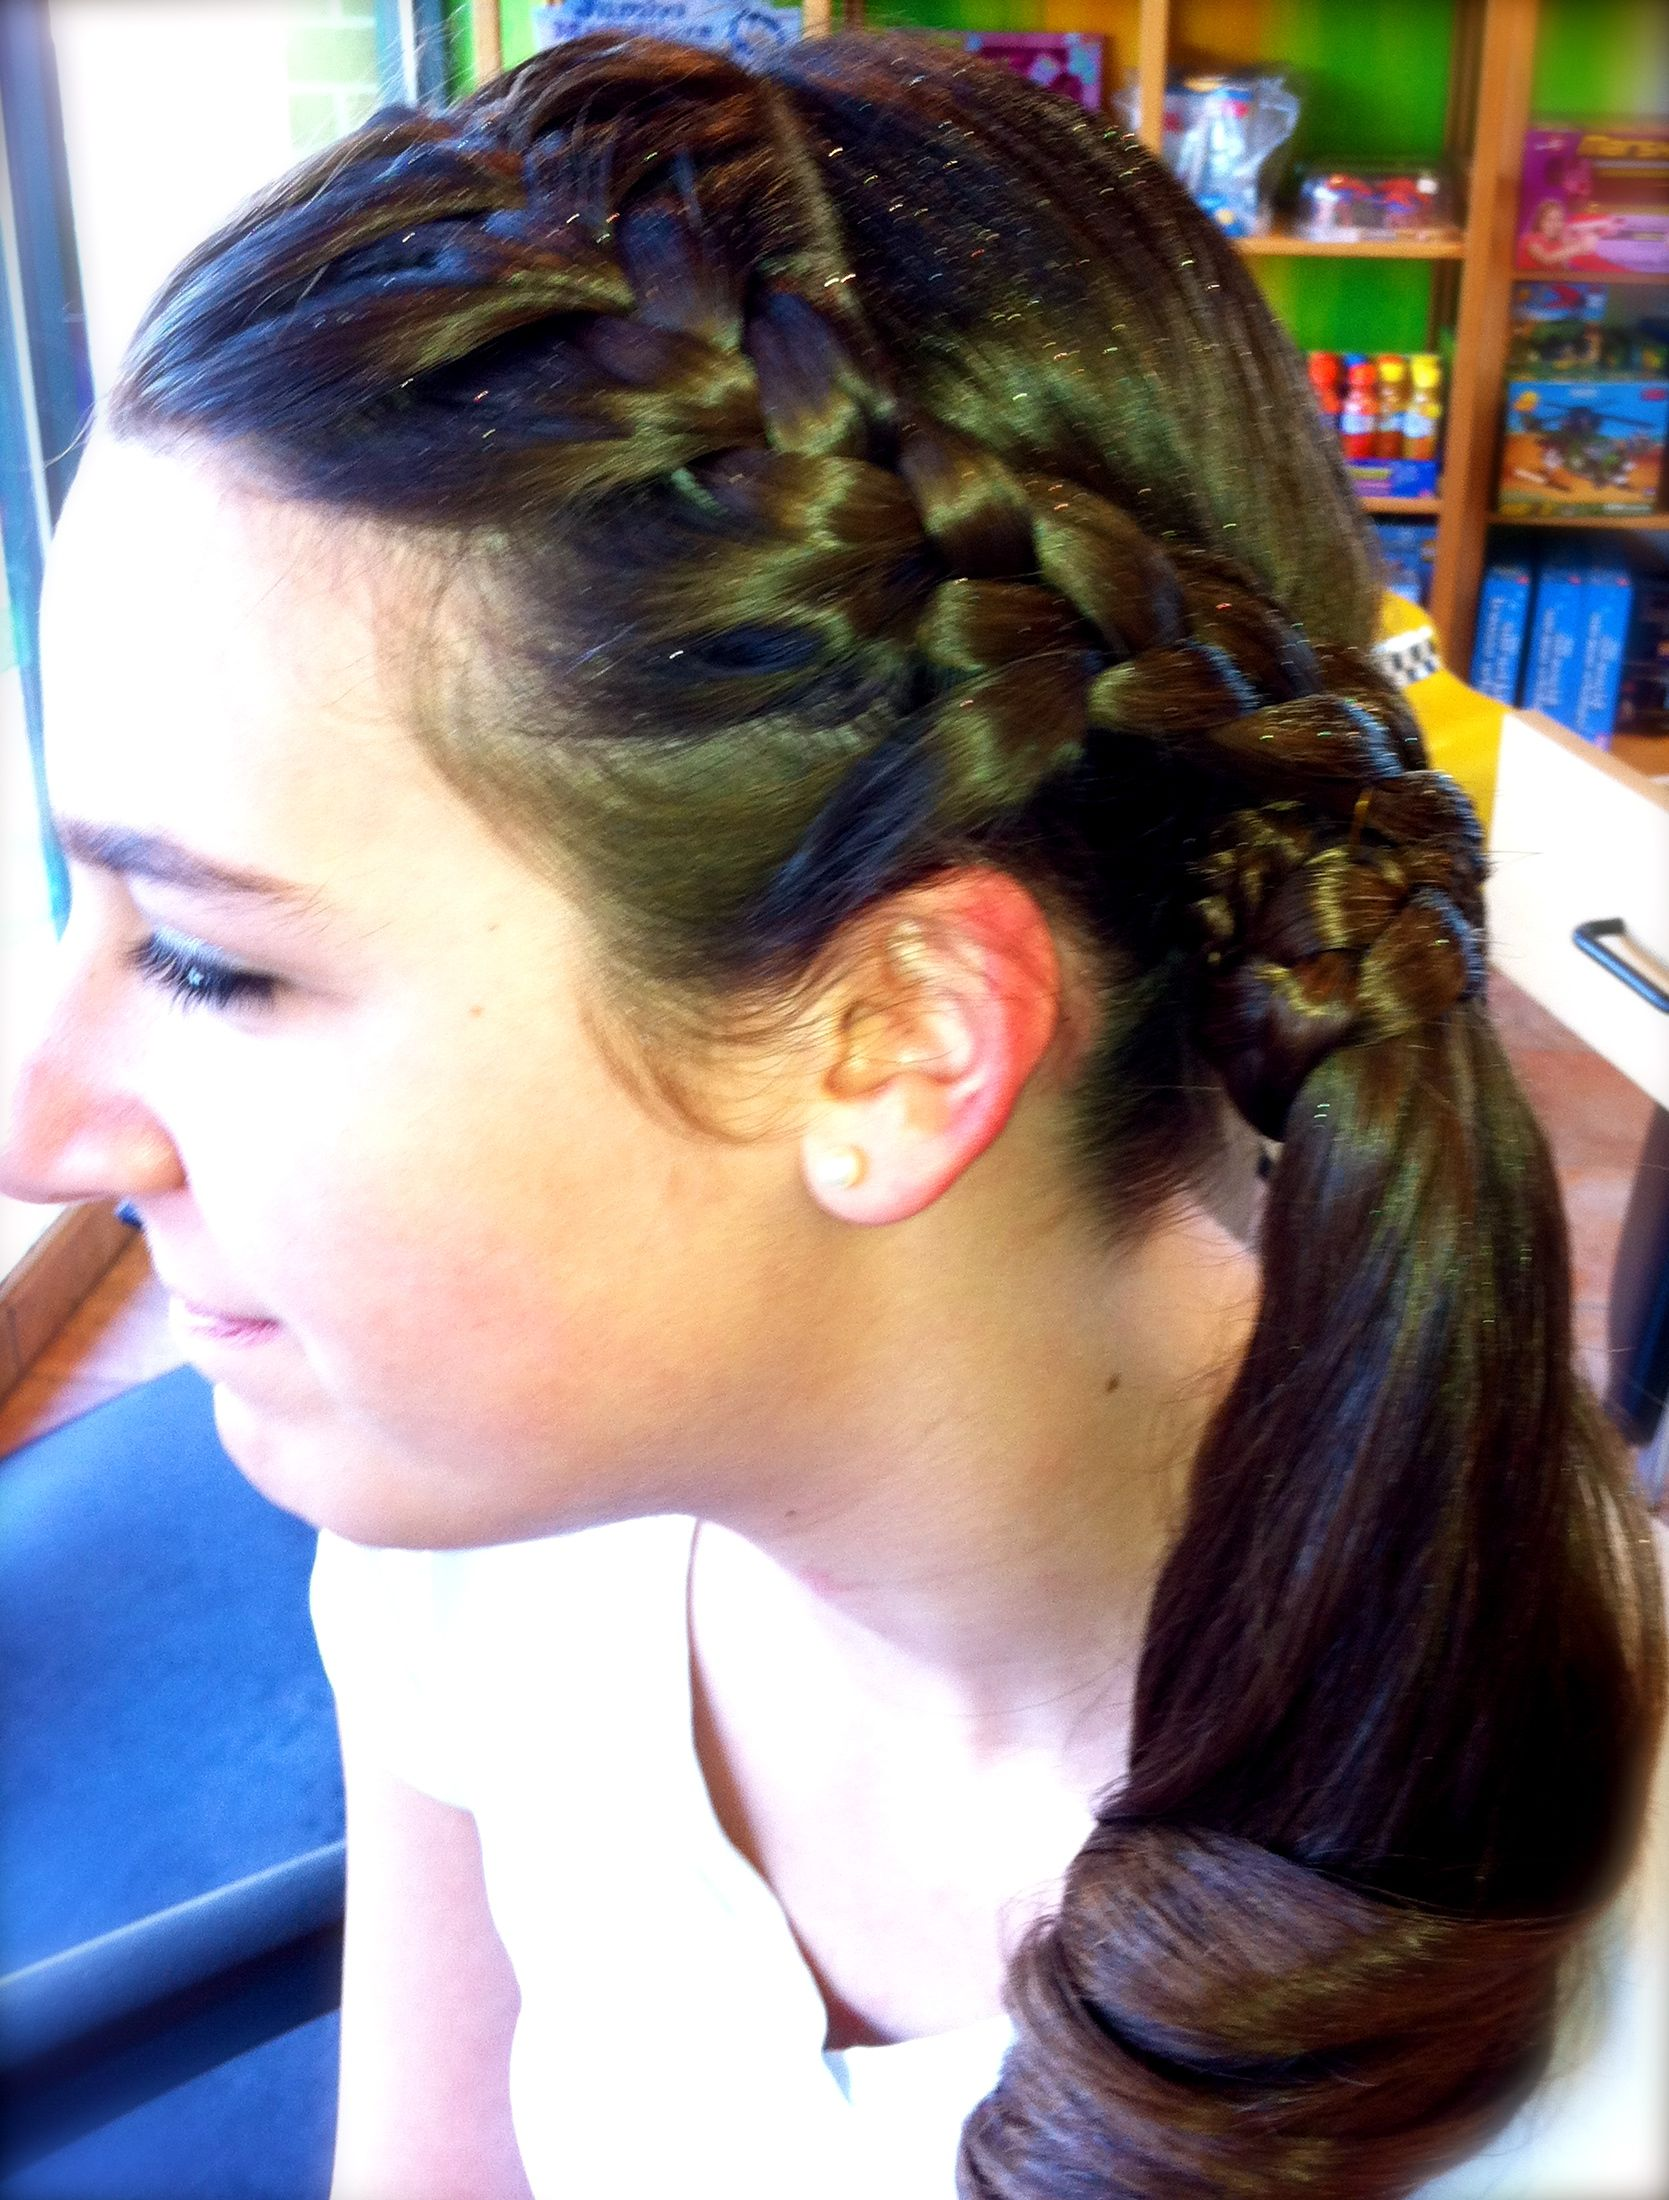 Braided & Wrapped around a Curled Side Pony Tail with lite glitter